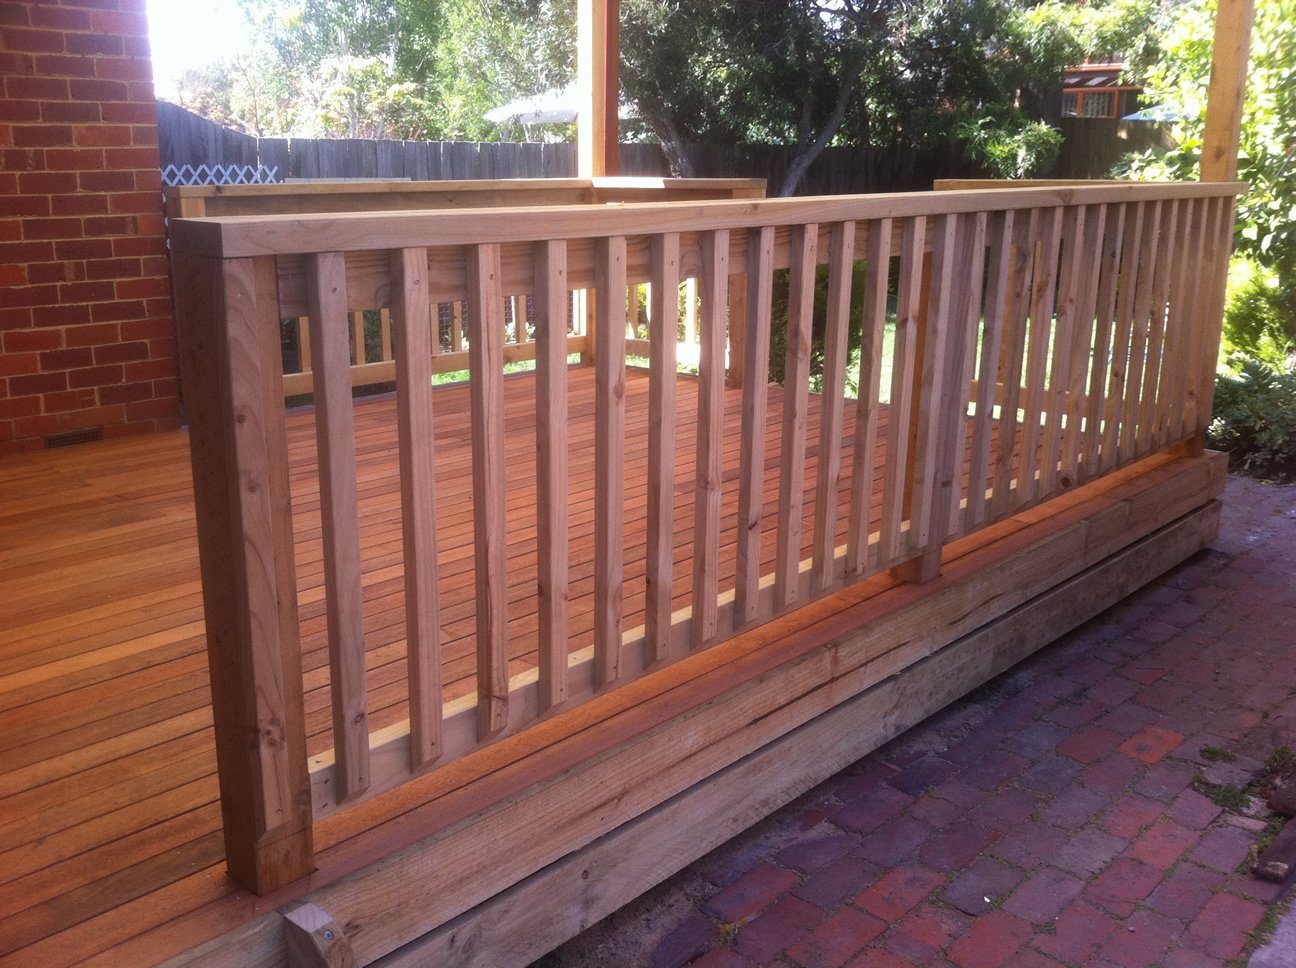 Home Renovation - Deck Railing